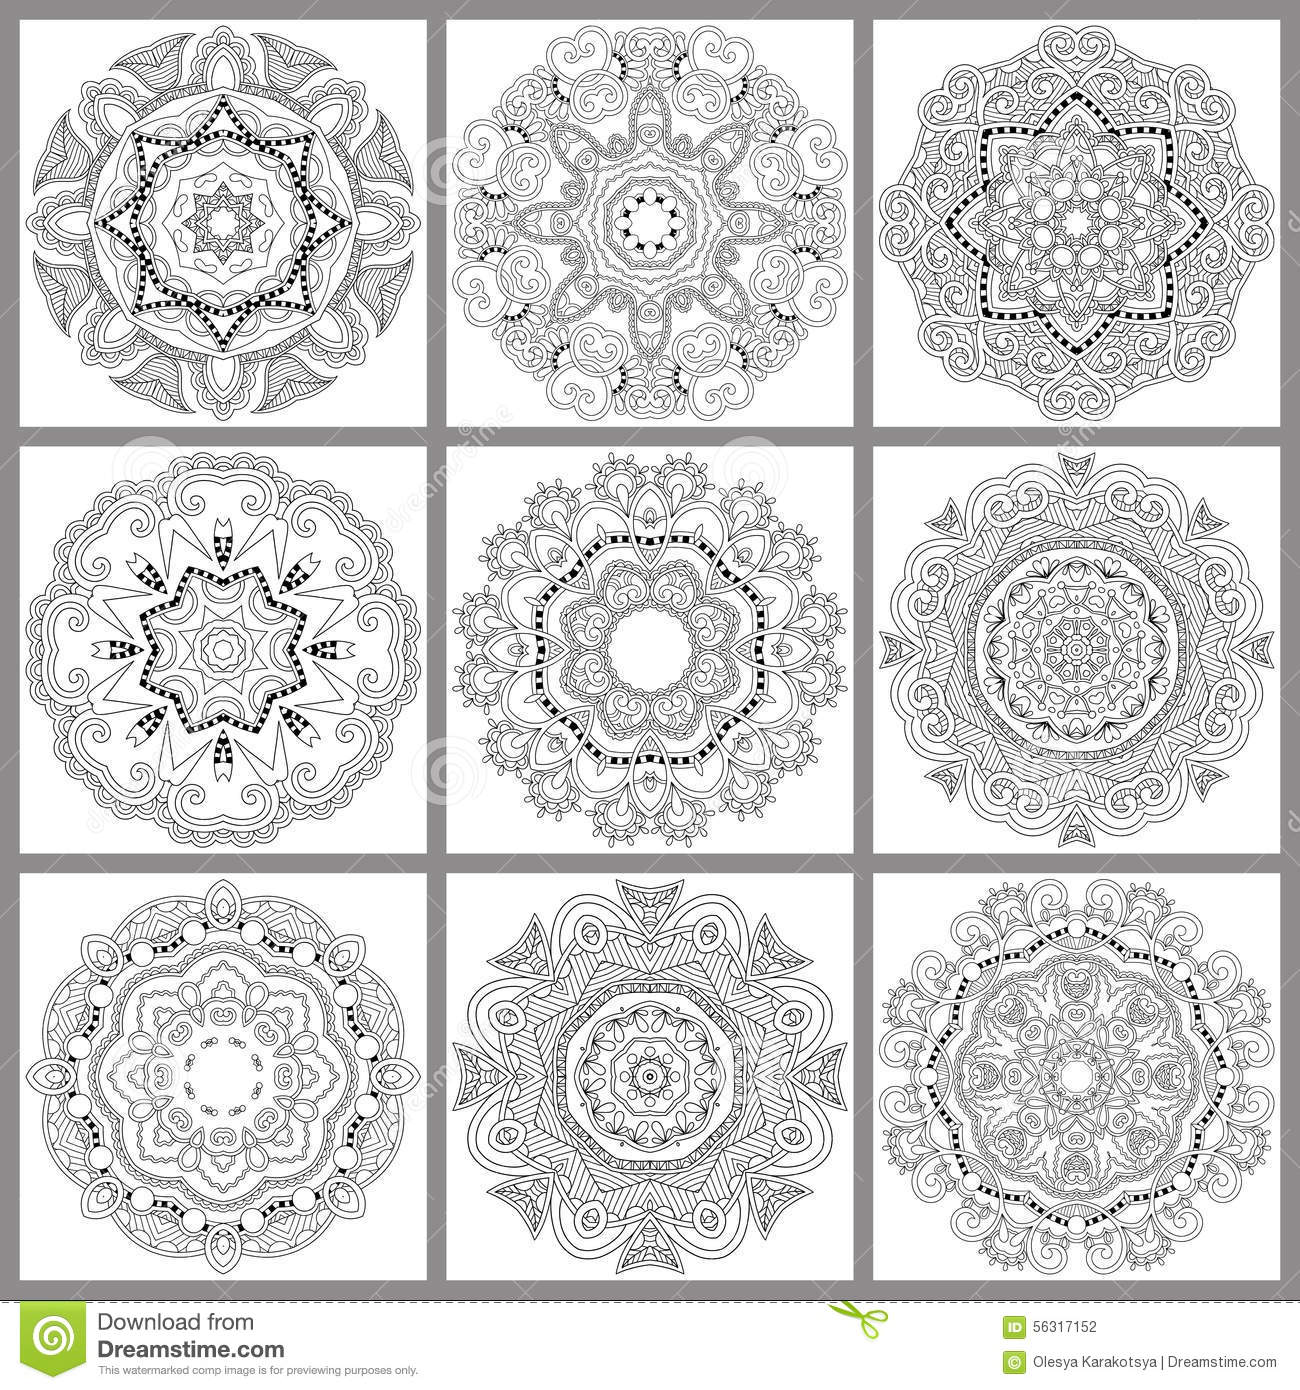 unique coloring book square page for adults stock photography - Unique Coloring Books